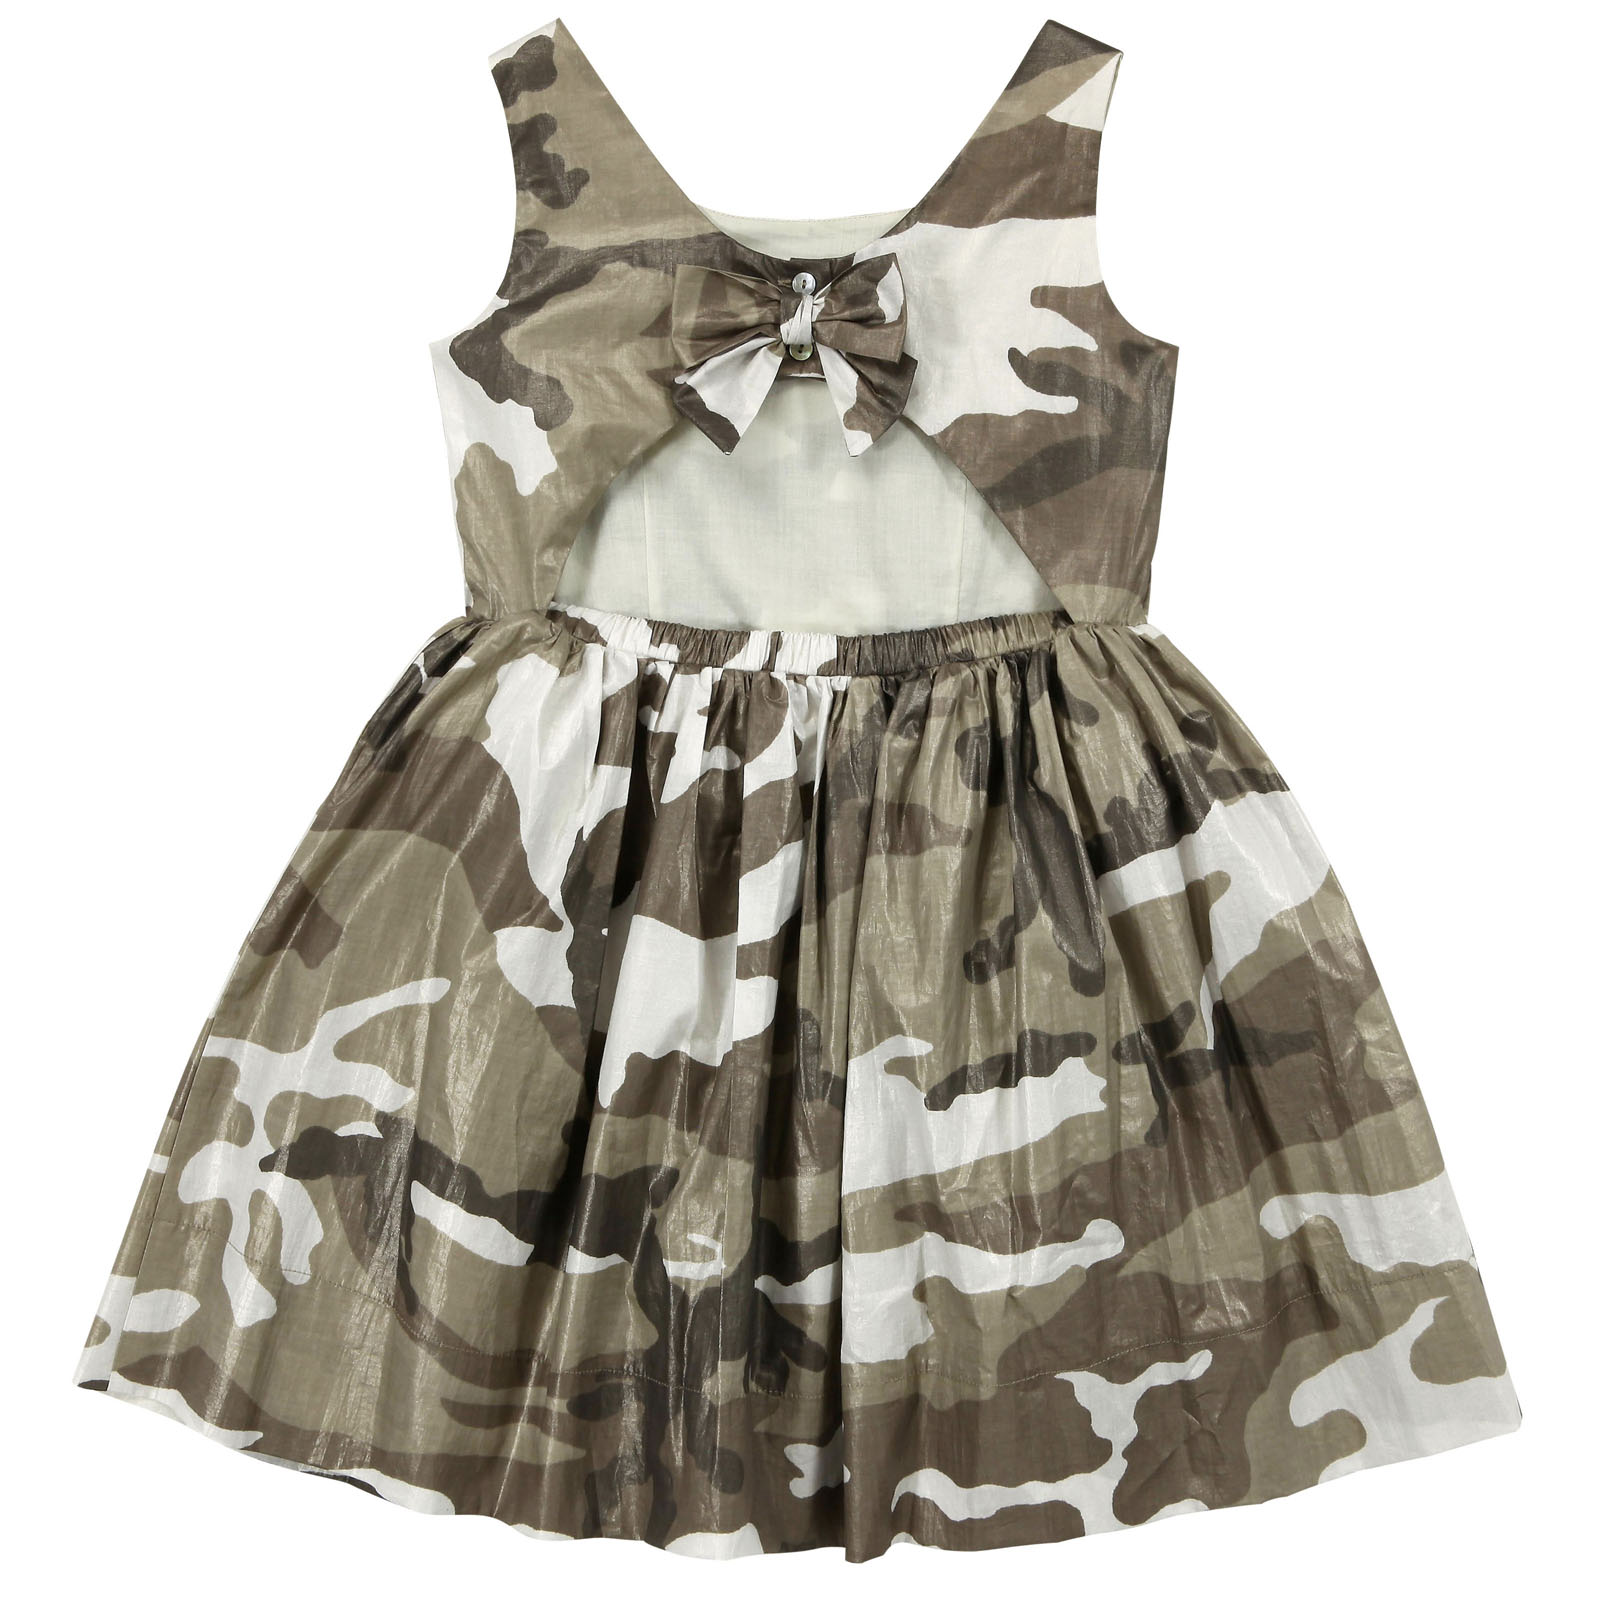 Jakioo by Monnalisa beige and brown camouflage dress